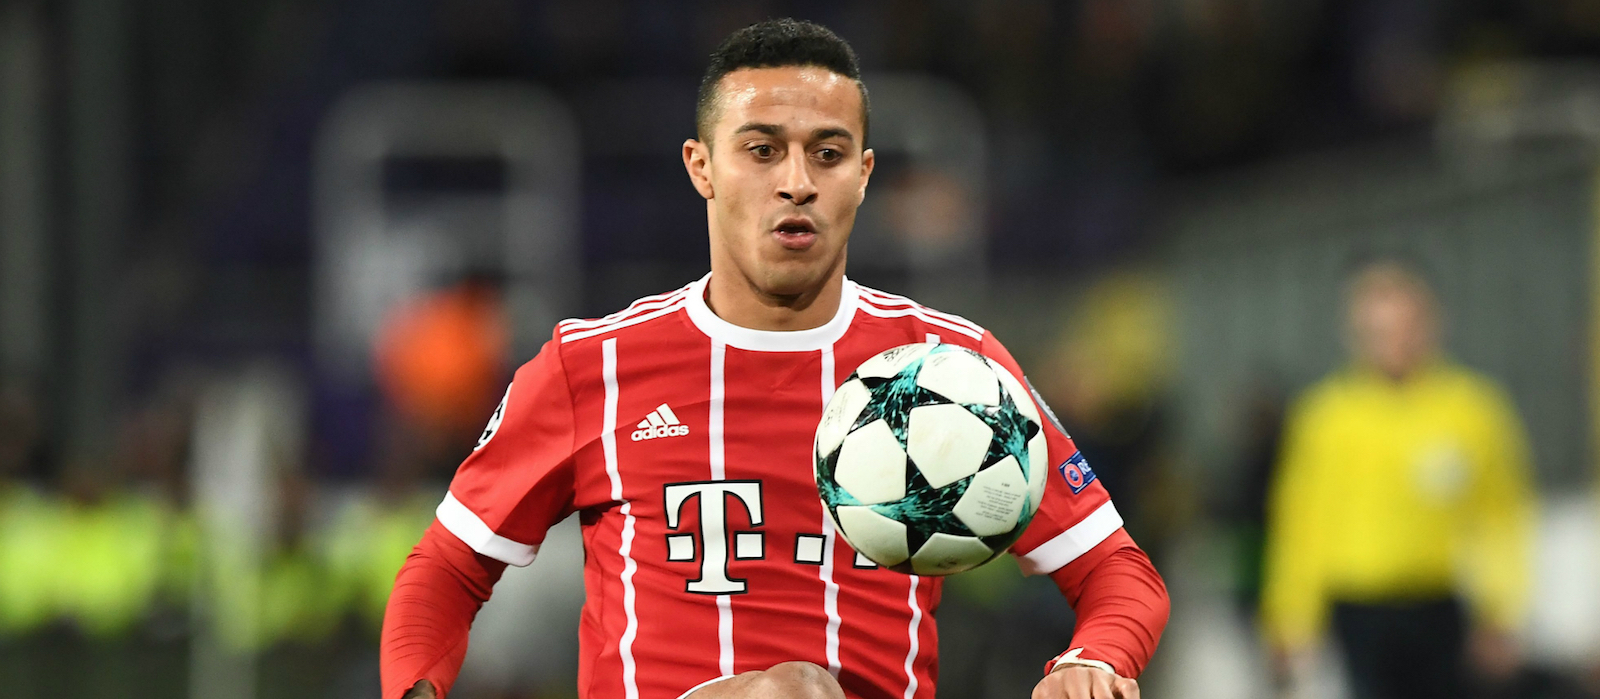 Wayne Rooney: Thiago Alcantara one of the best midfielders around